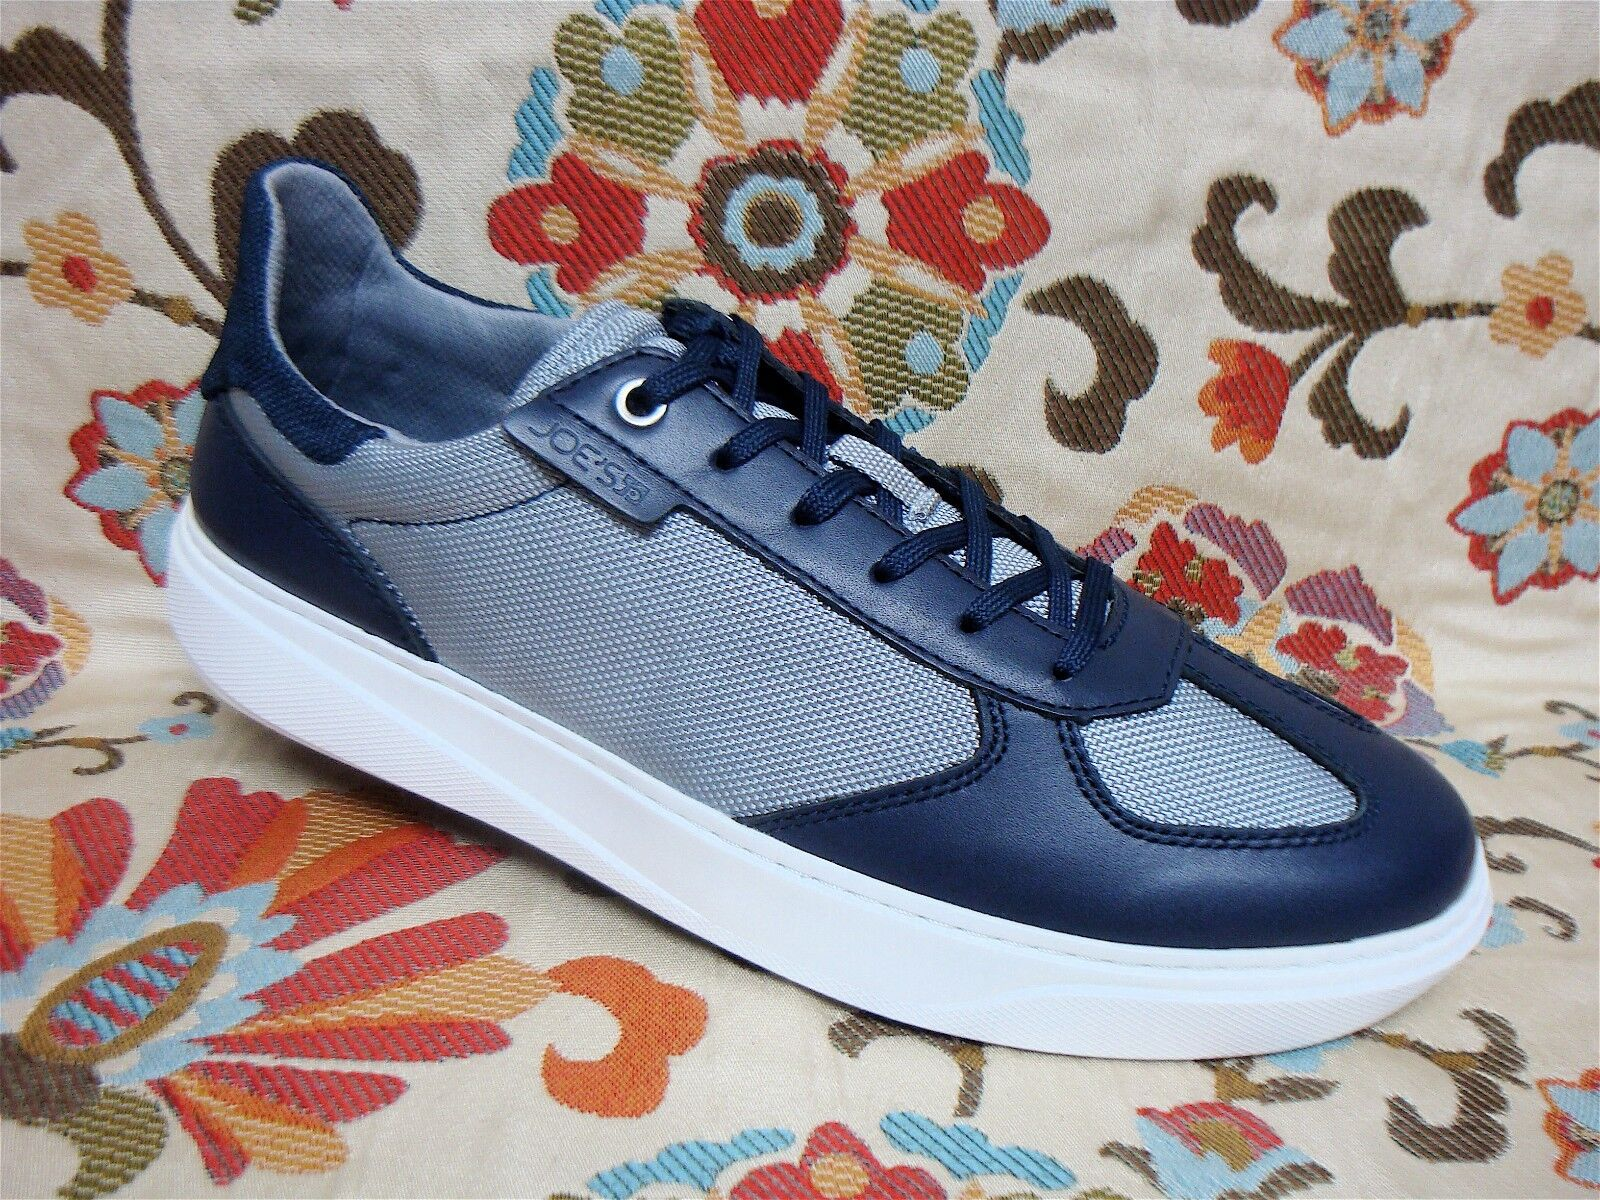 JOE'S  - JJ0011 - Men's Casual shoes Sneakers - Navy bluee Light bluee - Size 8.5